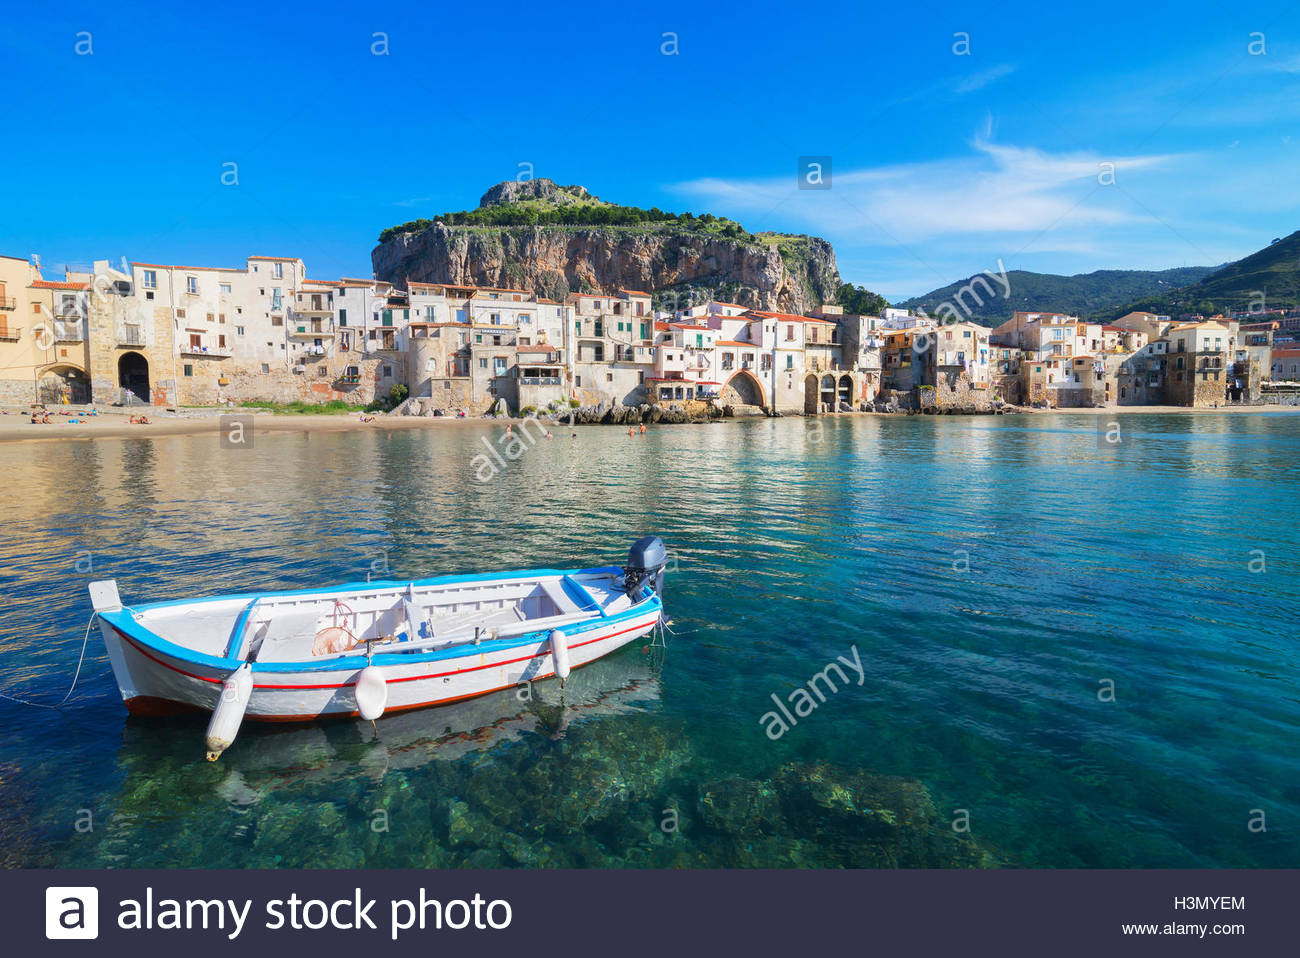 Fisherman's boat near old town waterfront and La Rocca, Cefalu, Sicily, Italy - Stock Image